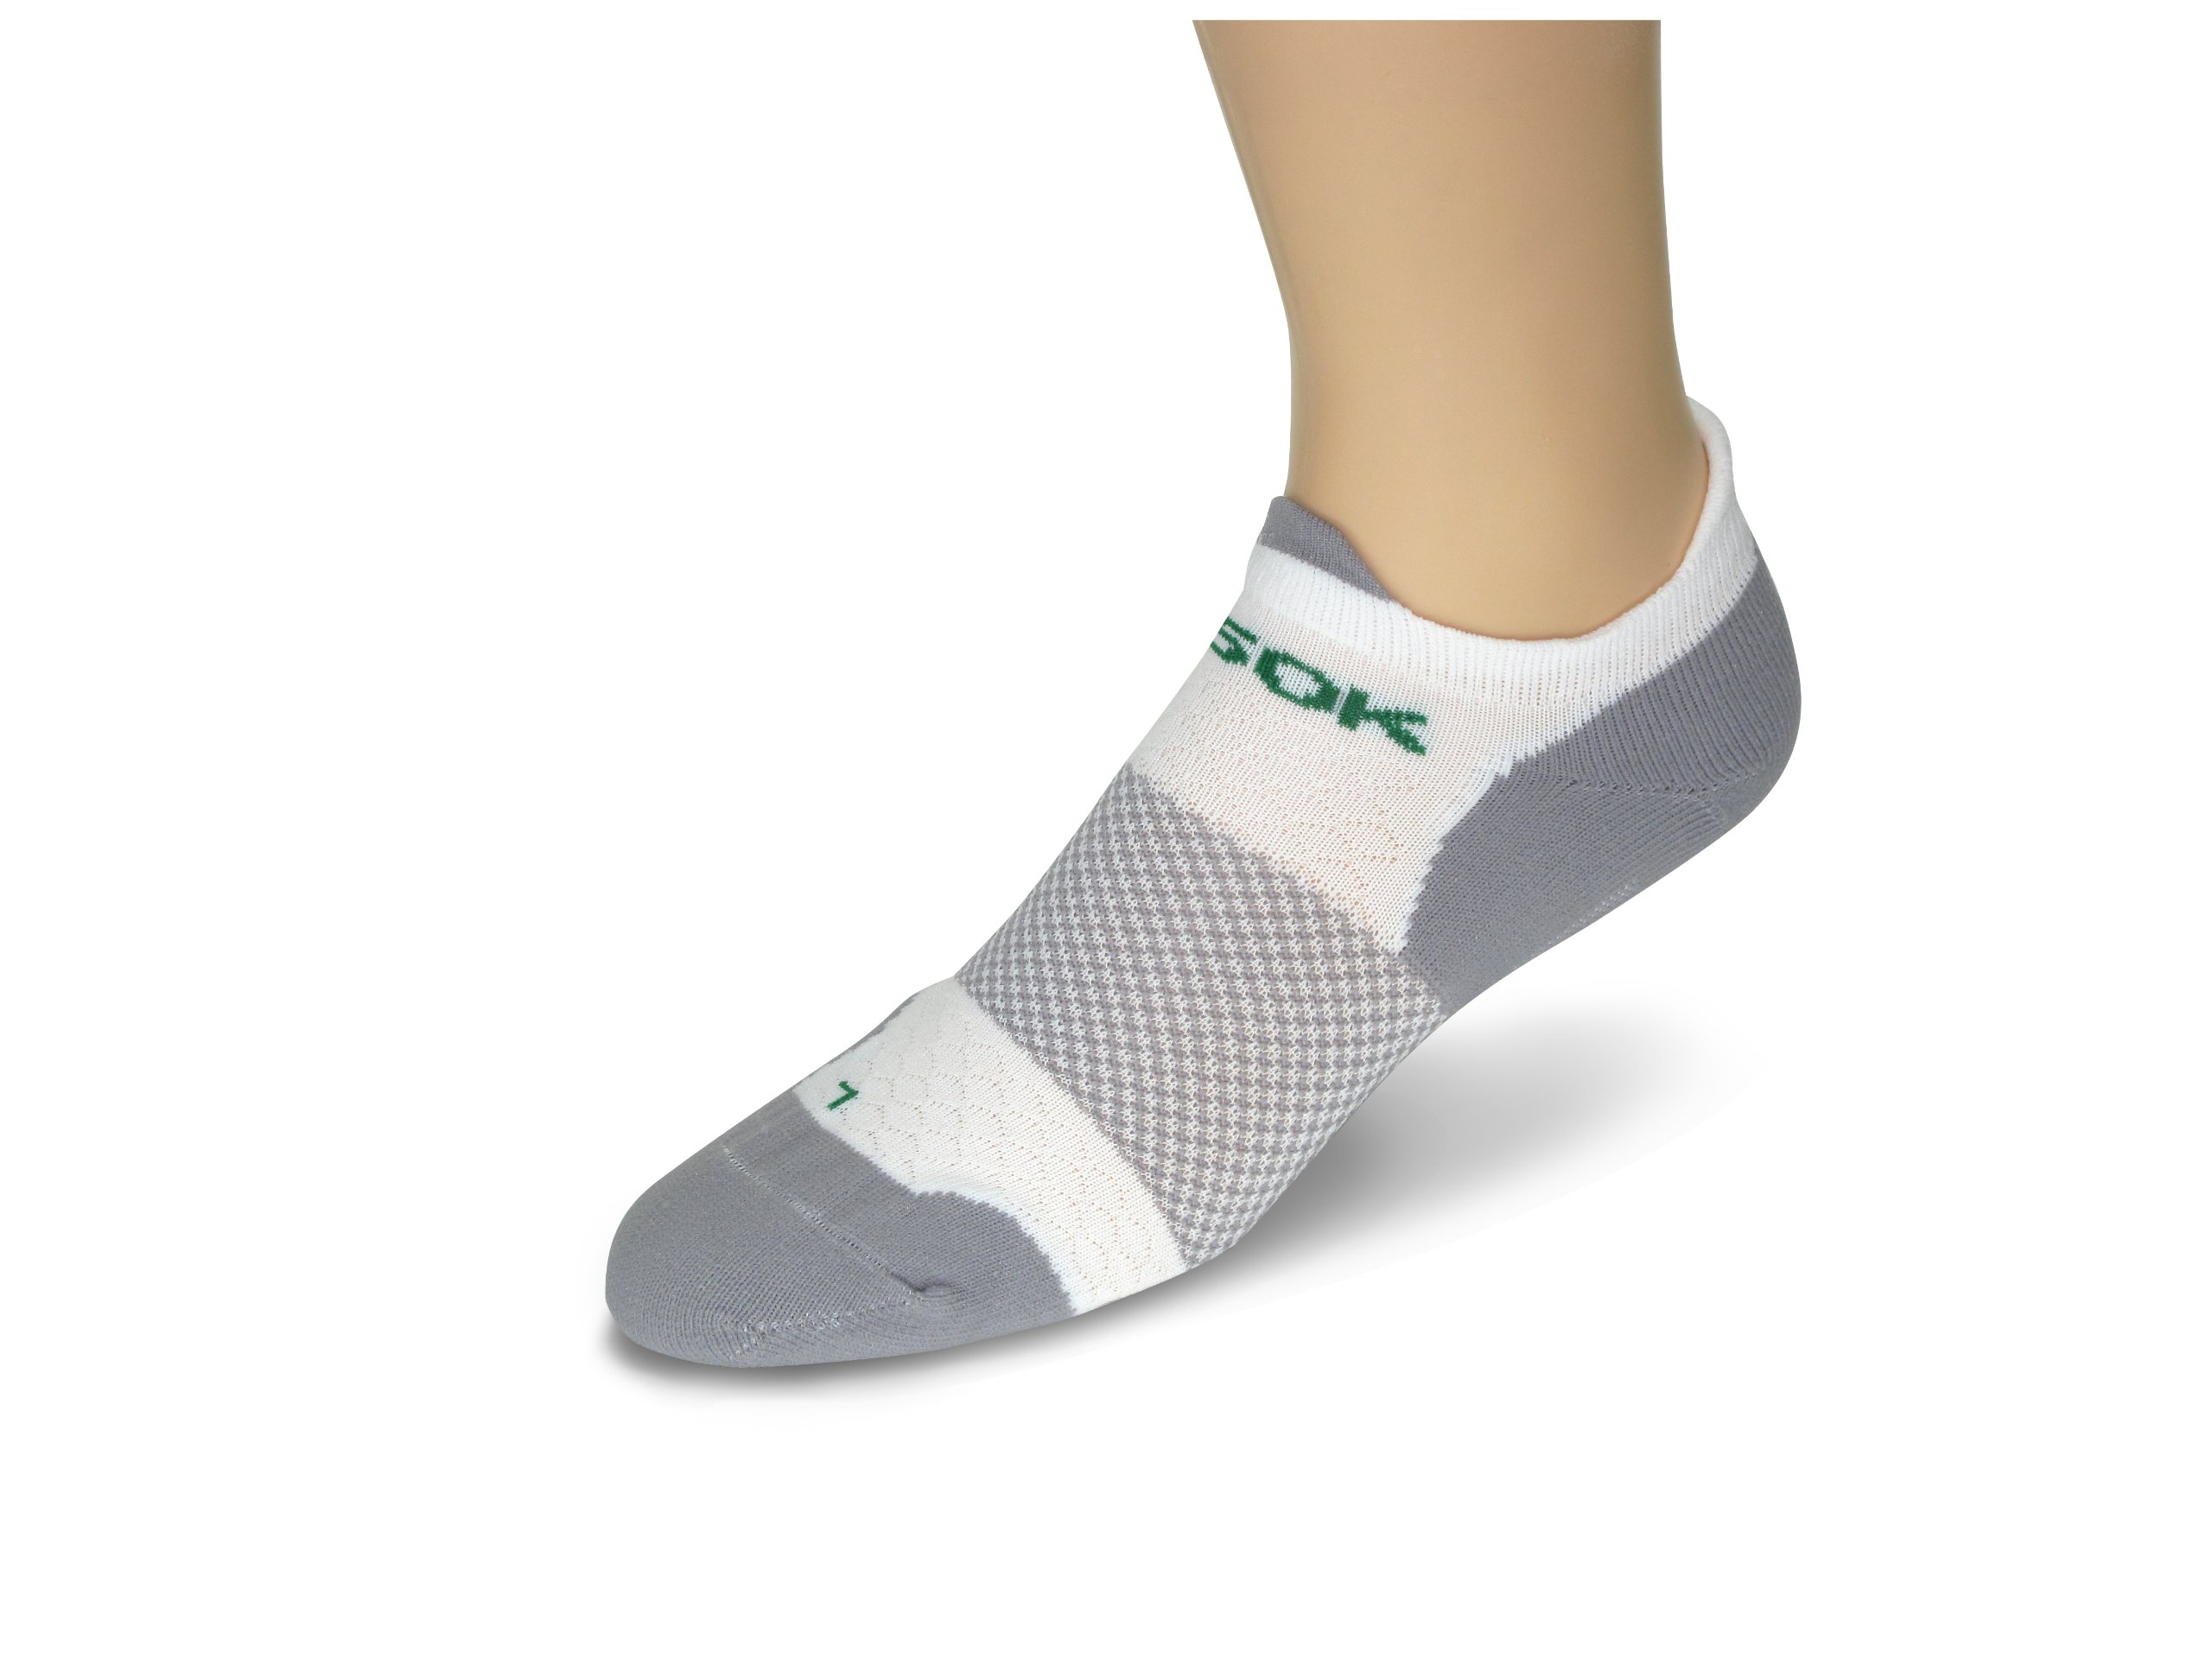 Fitsok F4 No Show Sock, 3-Pack (White, Small)